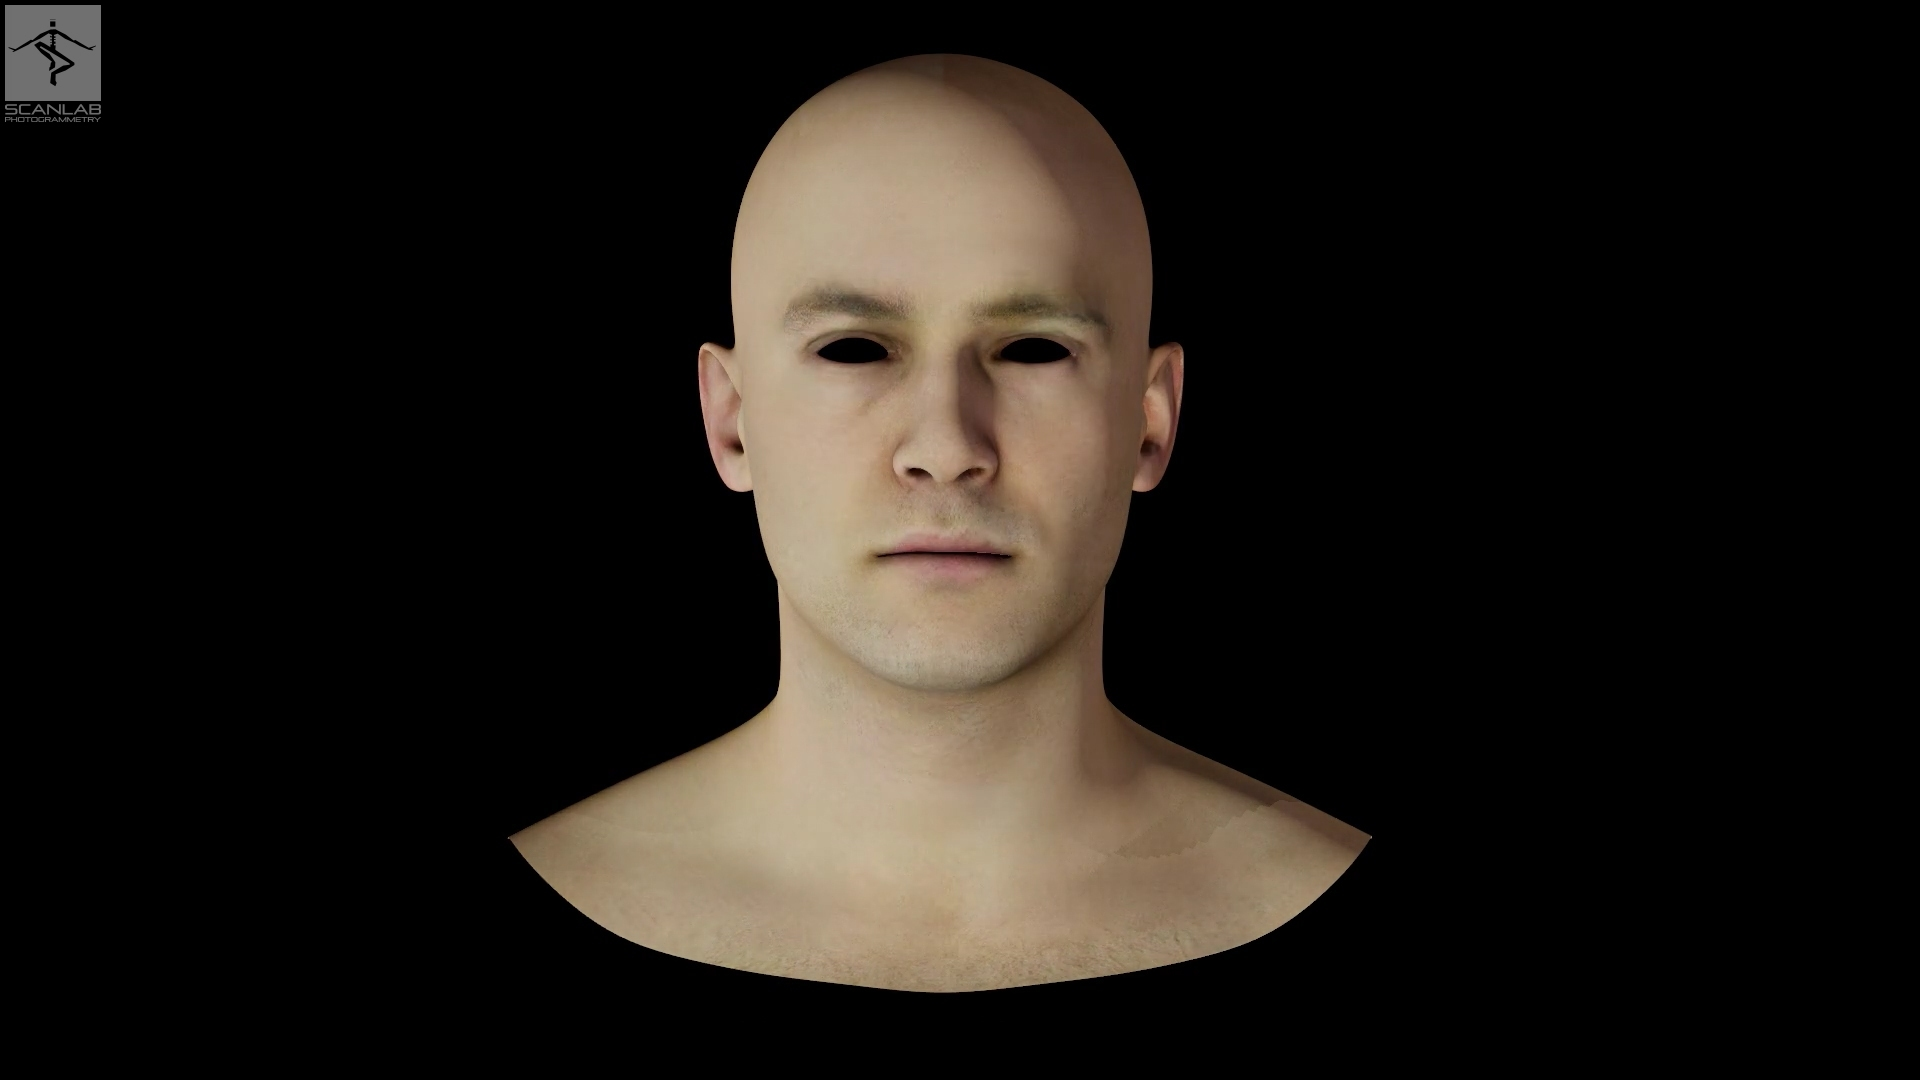 108000FaceTextures with 3dScans and AI FeaturedImage 000